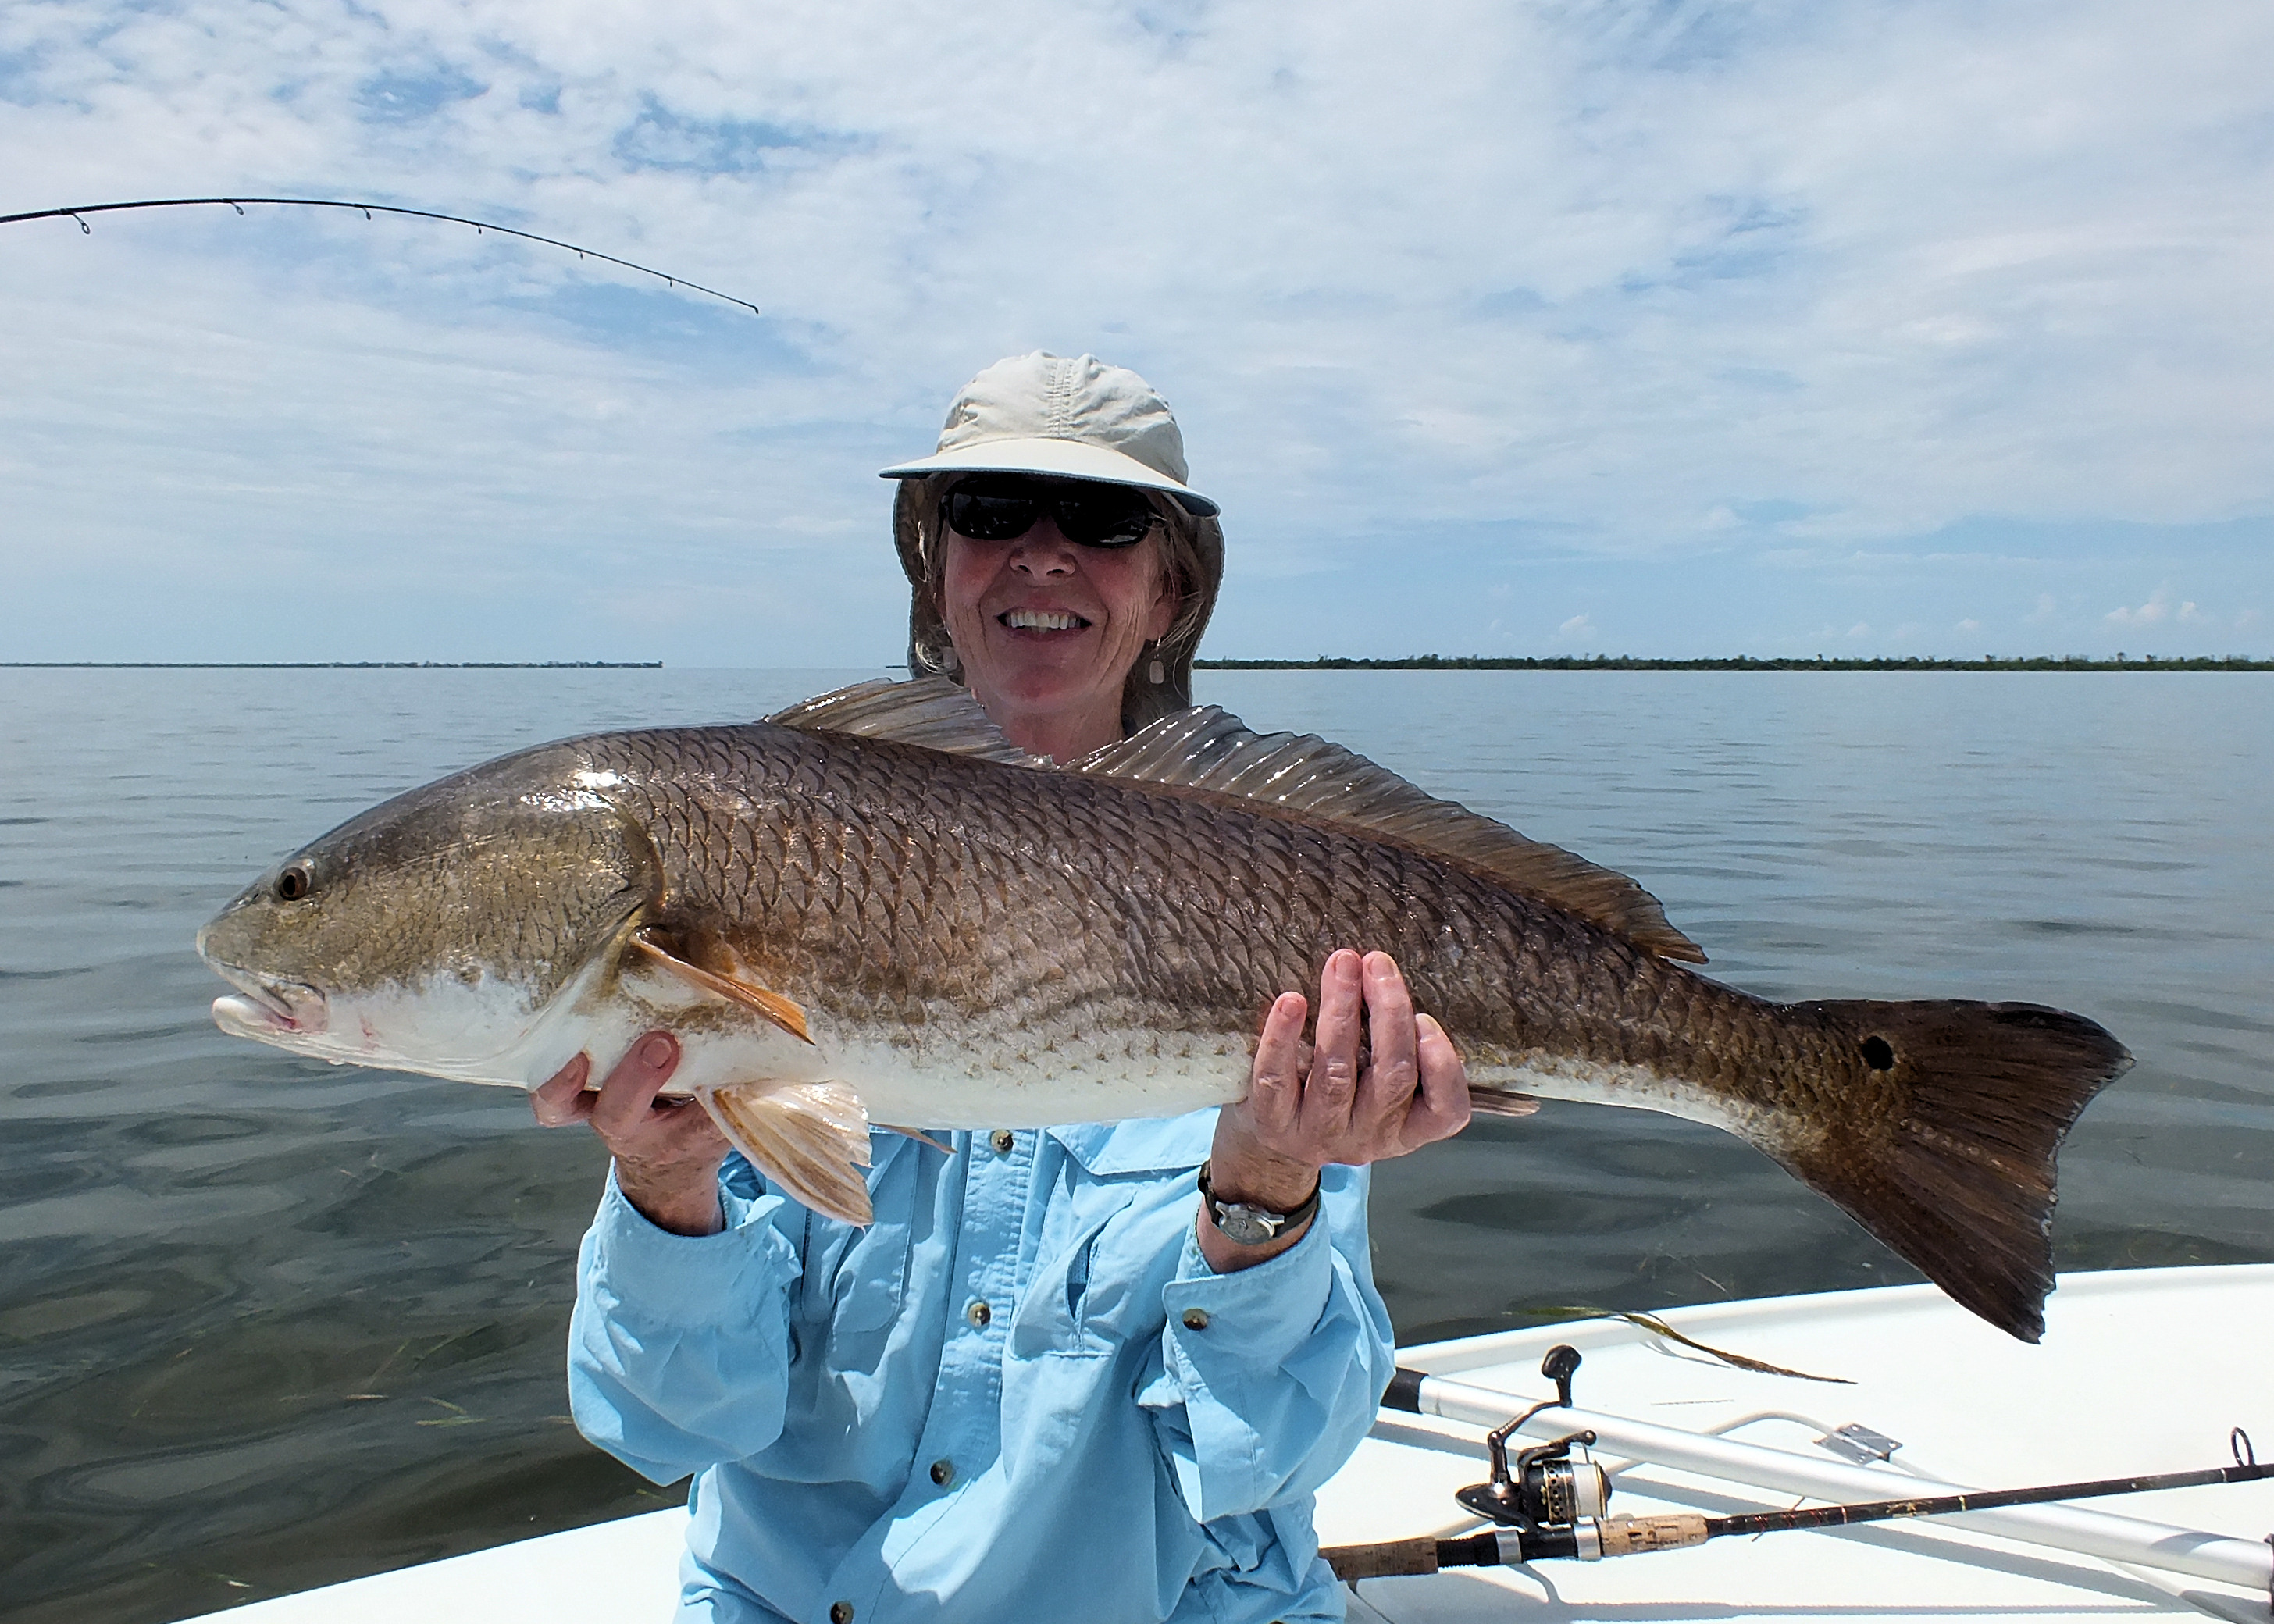 Redfish sanibel island fishing charters for Sanibel island fishing charters